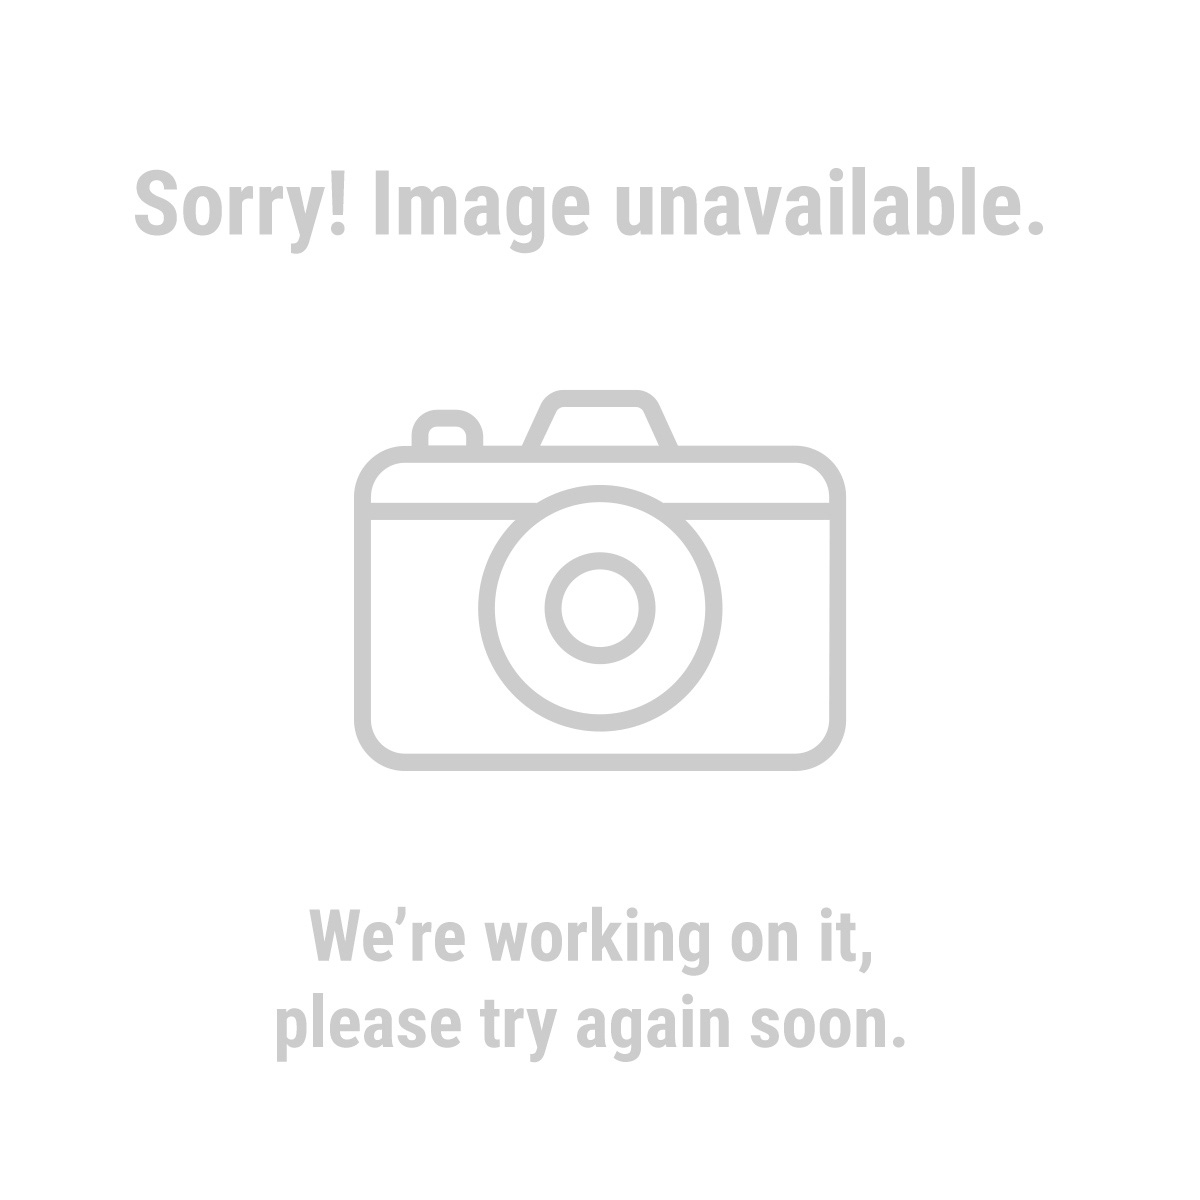 Central Pneumatic 93305 Professional HVLP Spray Gun Kit